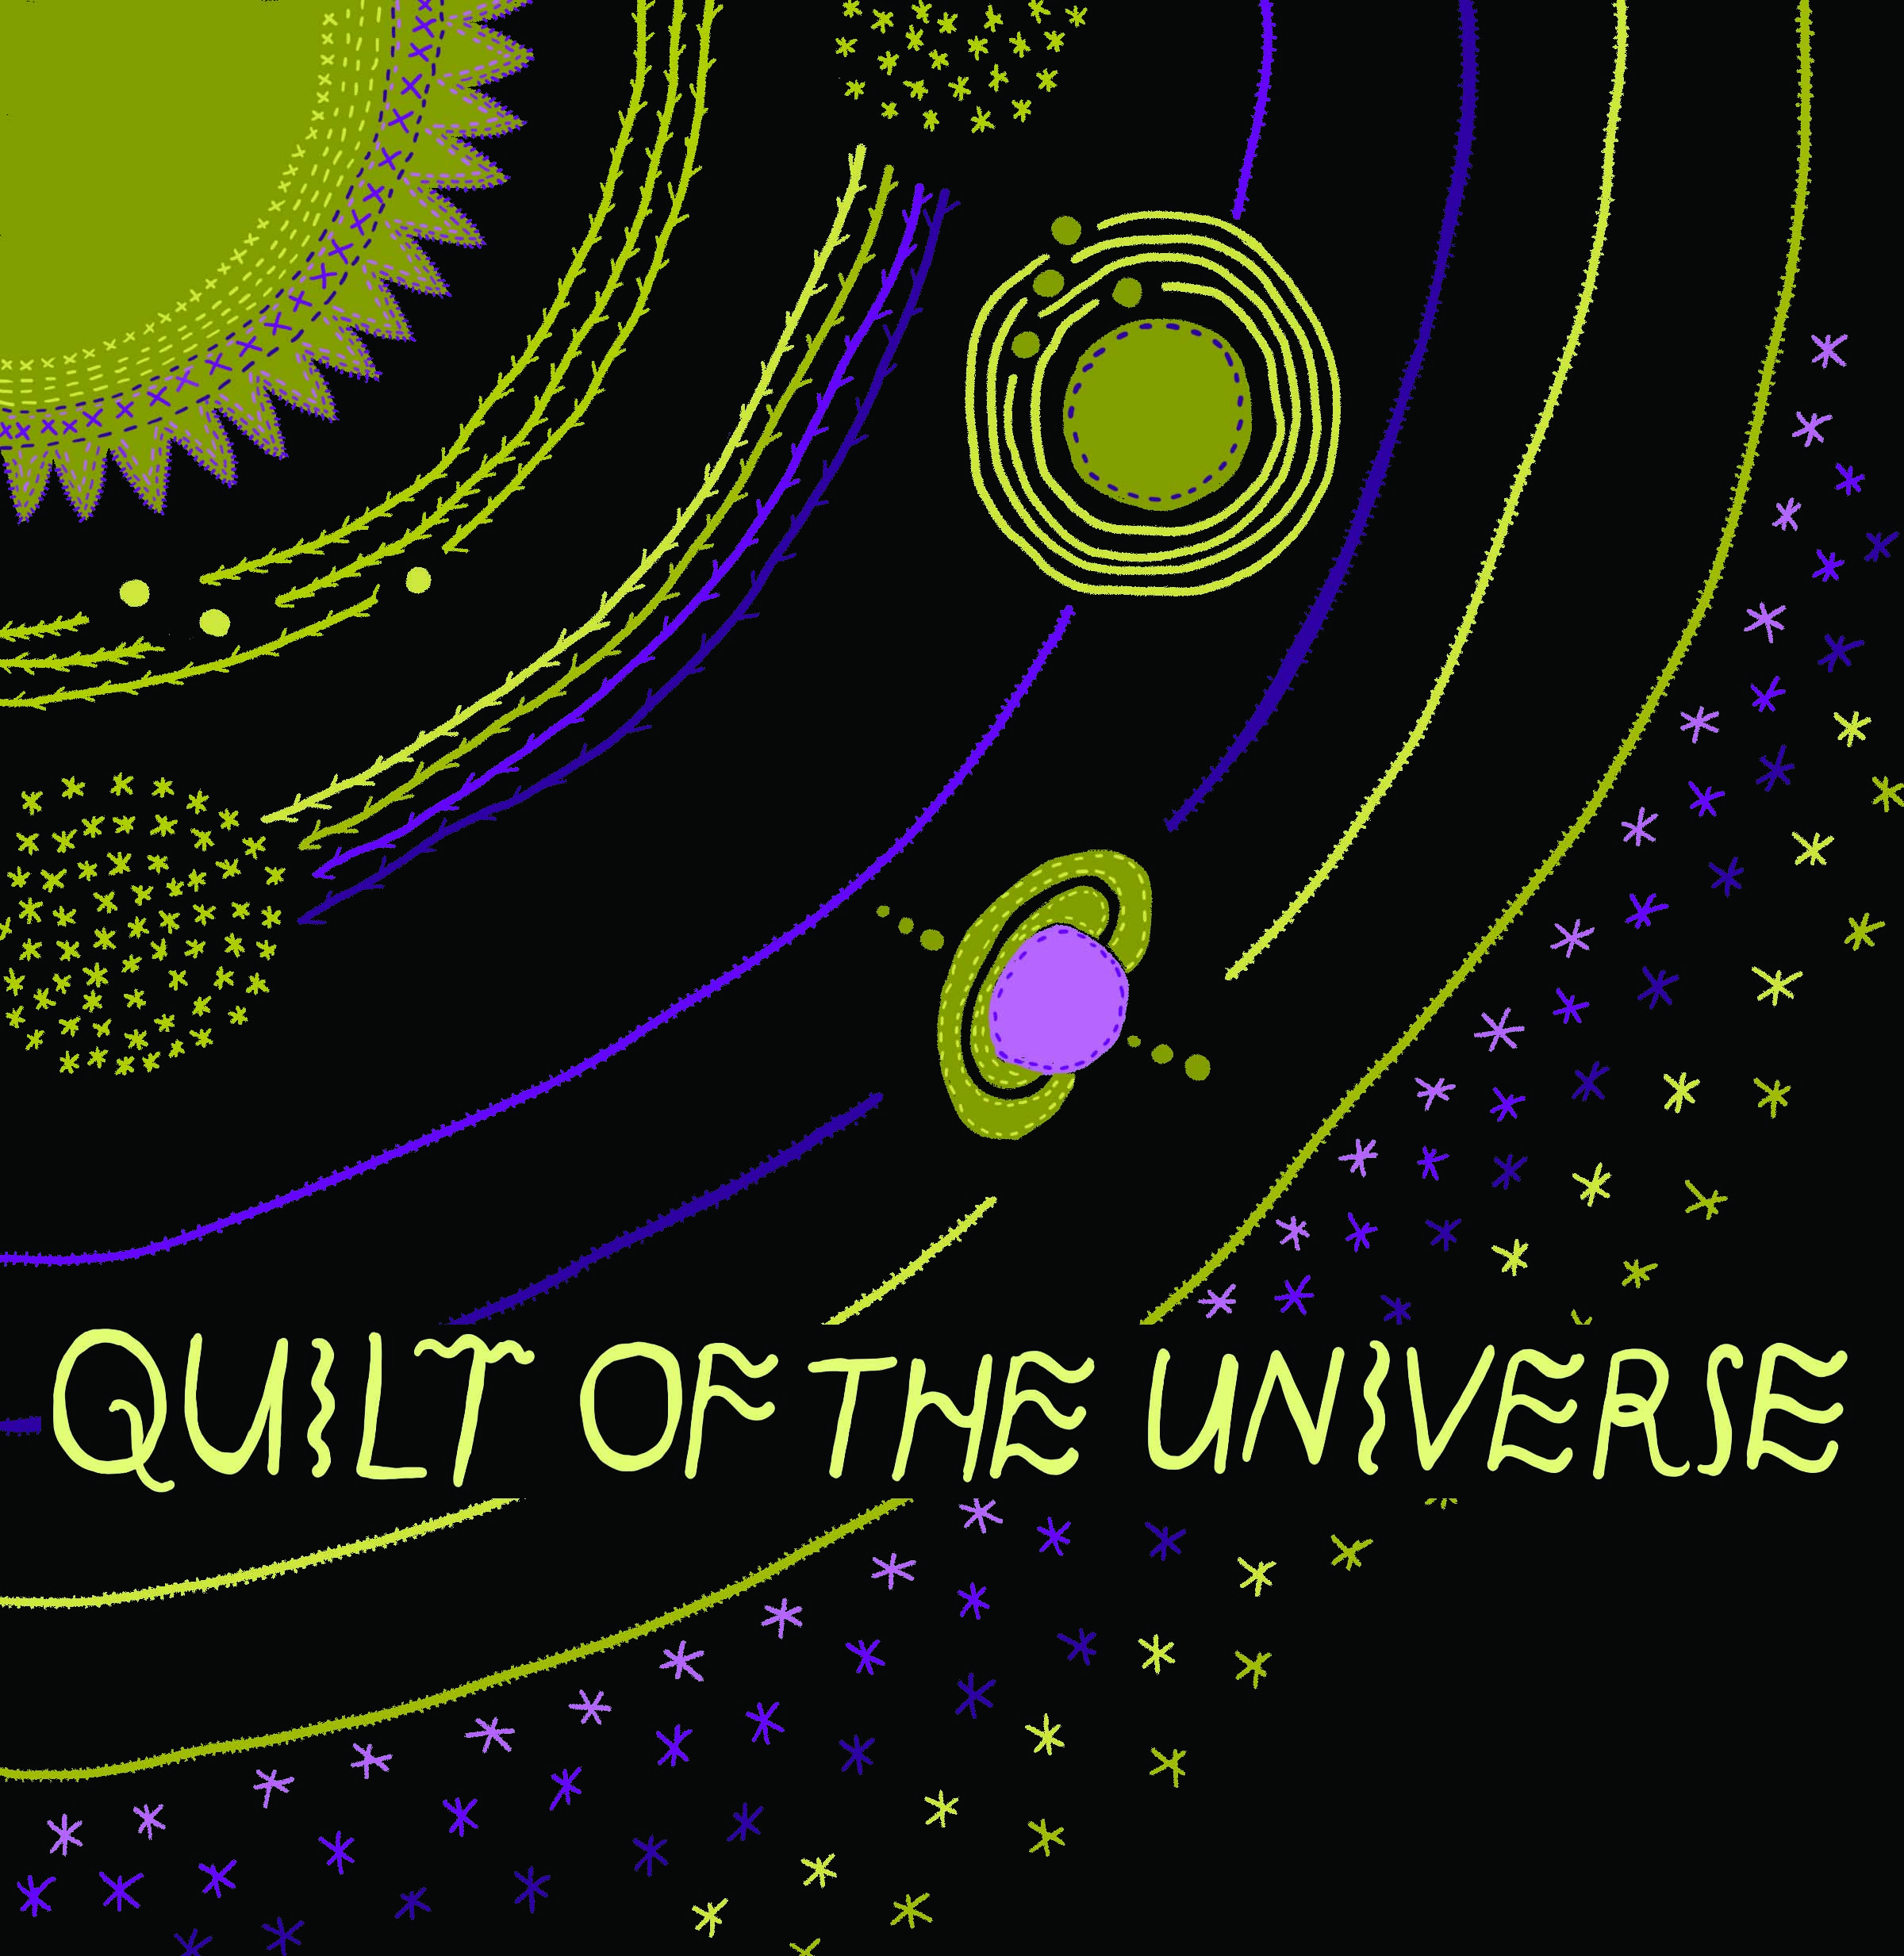 V/A - Quilt of the Universe - Out 6/21 | Preorder